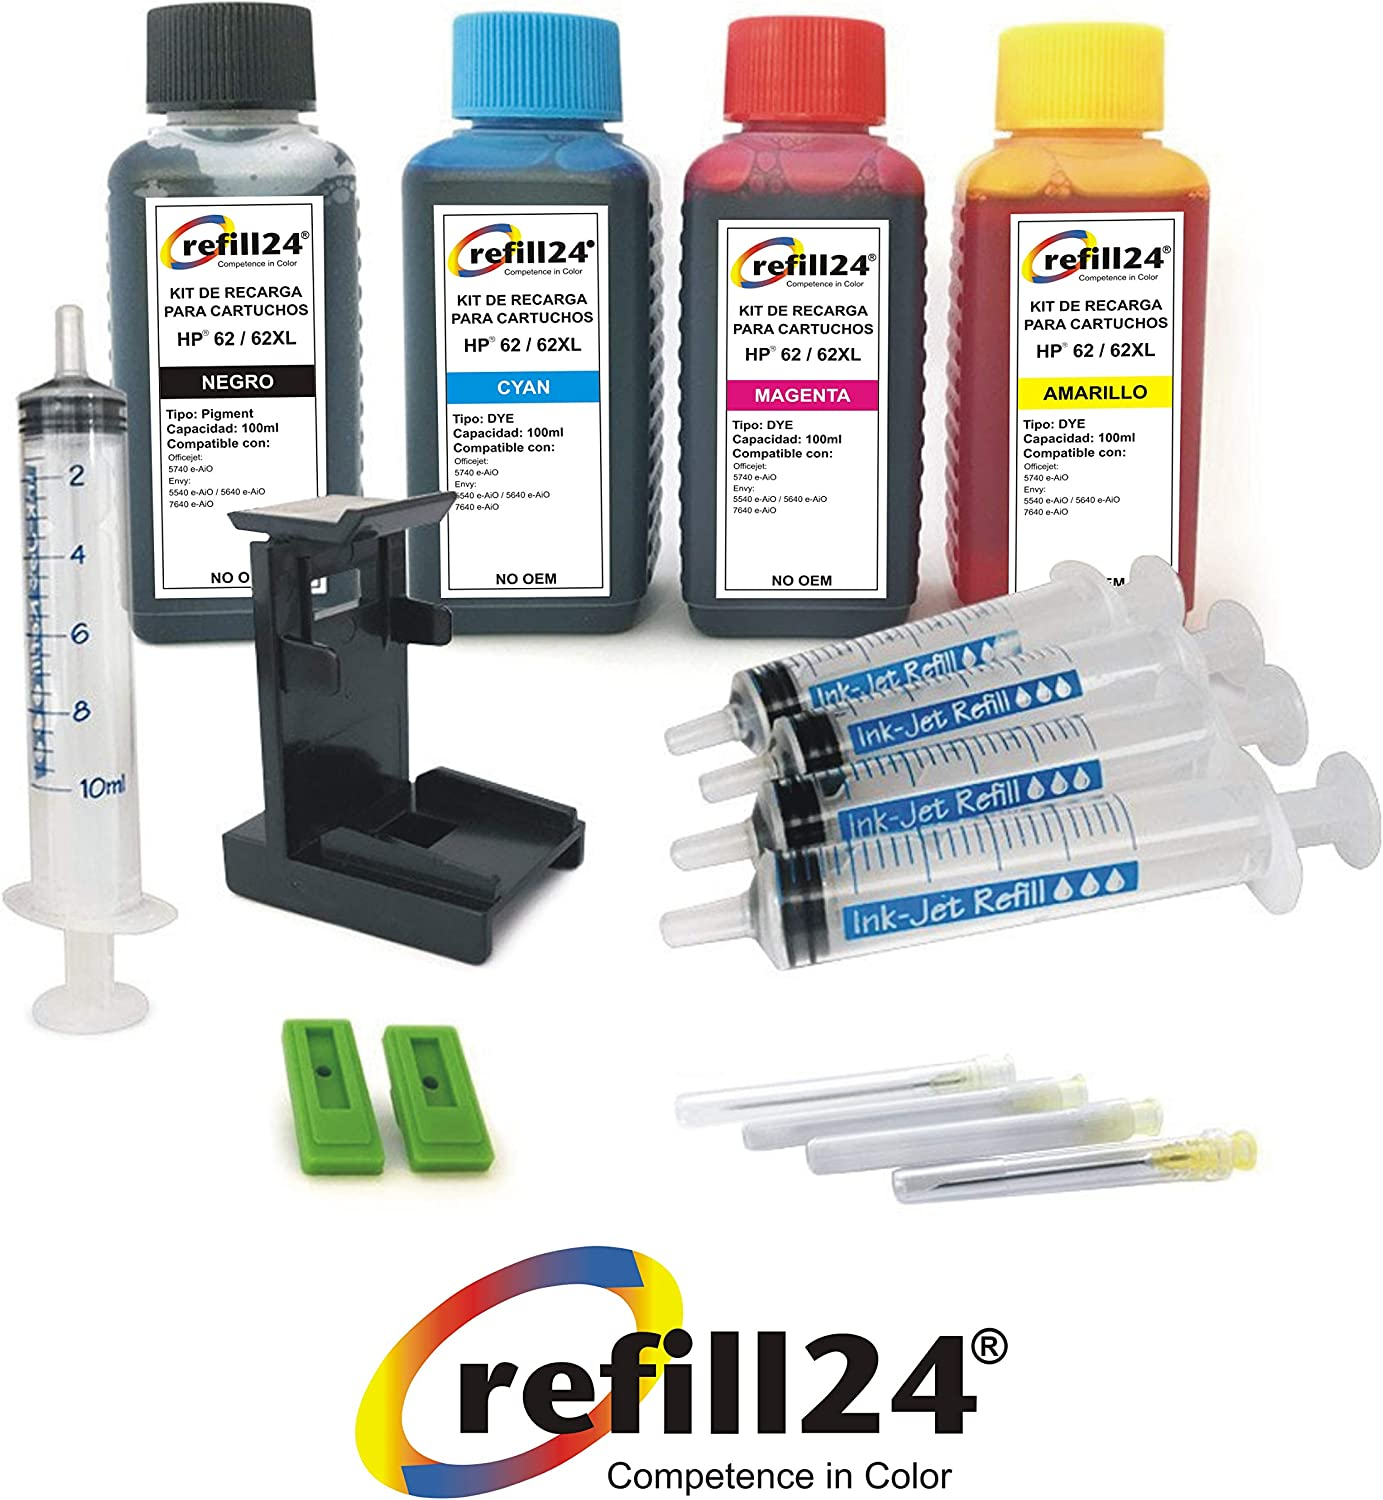 Kit de Recarga para Cartuchos de Tinta HP 62, 62 XL Negro y Color ...